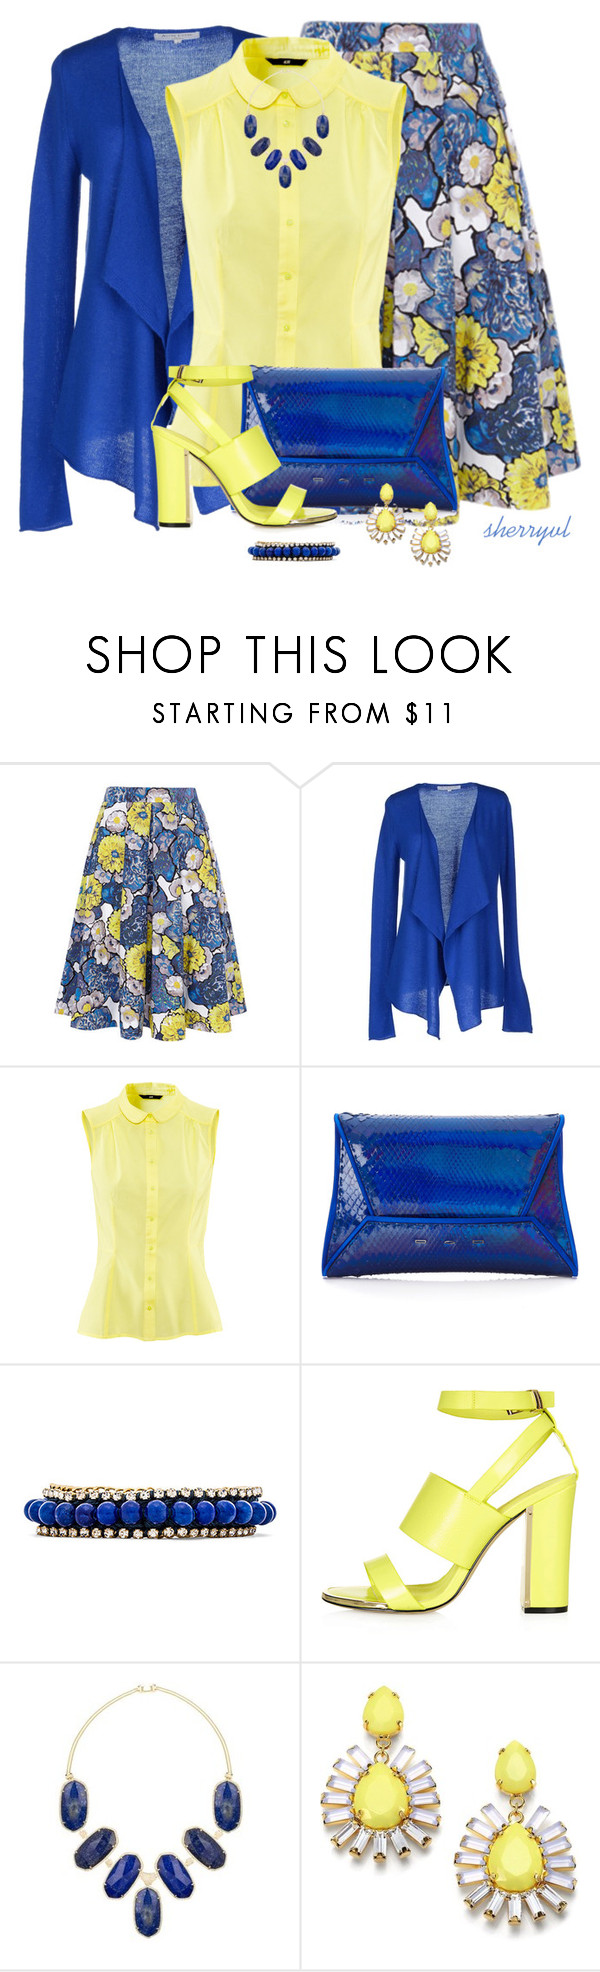 """""""Blue And Yellow"""" by sherryvl ❤ liked on Polyvore featuring Autre Chose Paris, H&M, VBH, Ettika, Topshop, Kendra Scott and ABS by Allen Schwartz"""